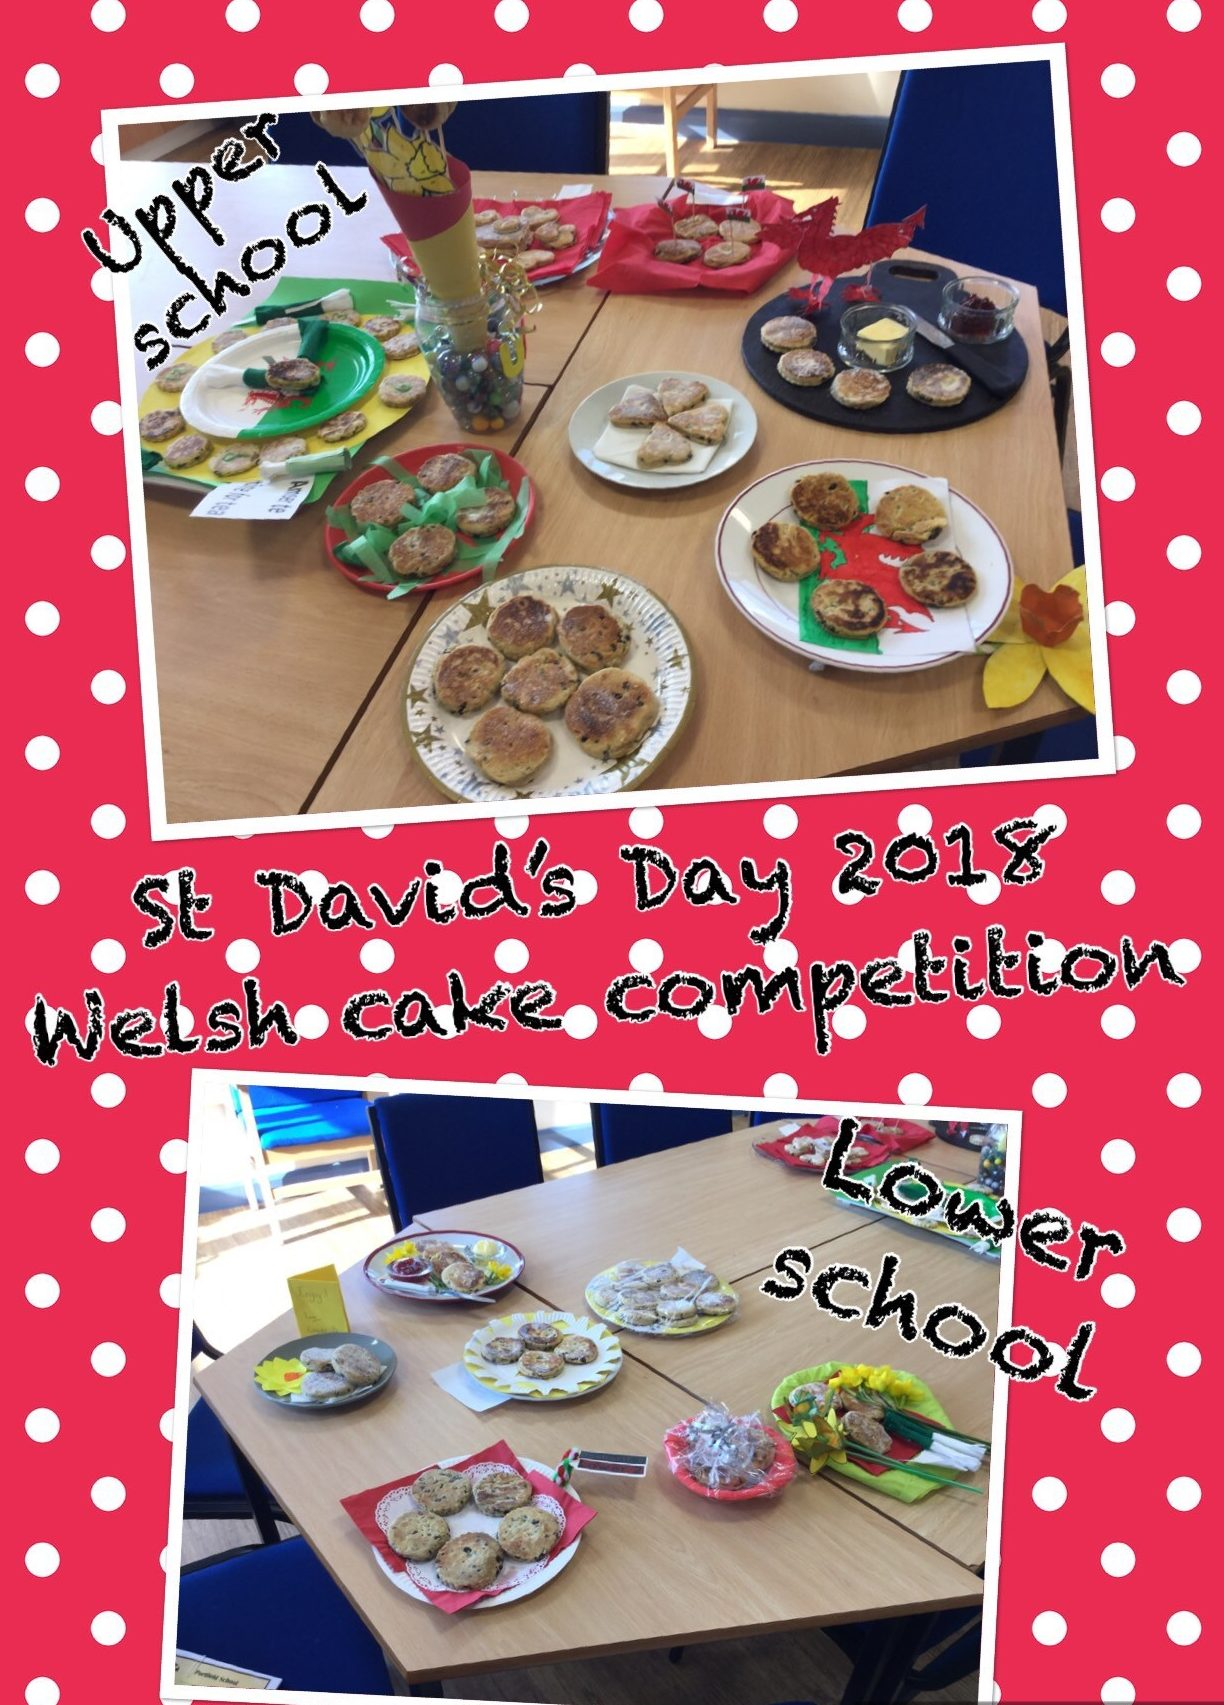 Classes were invited to enter the Welsh cake competition. Each class were asked to enter their finest Welsh Cakes into the competition which is judged by our Chair of Governors, Mrs Thomas-Cleaver. The completion entries were a very high standard. The winners will be announced later this week.